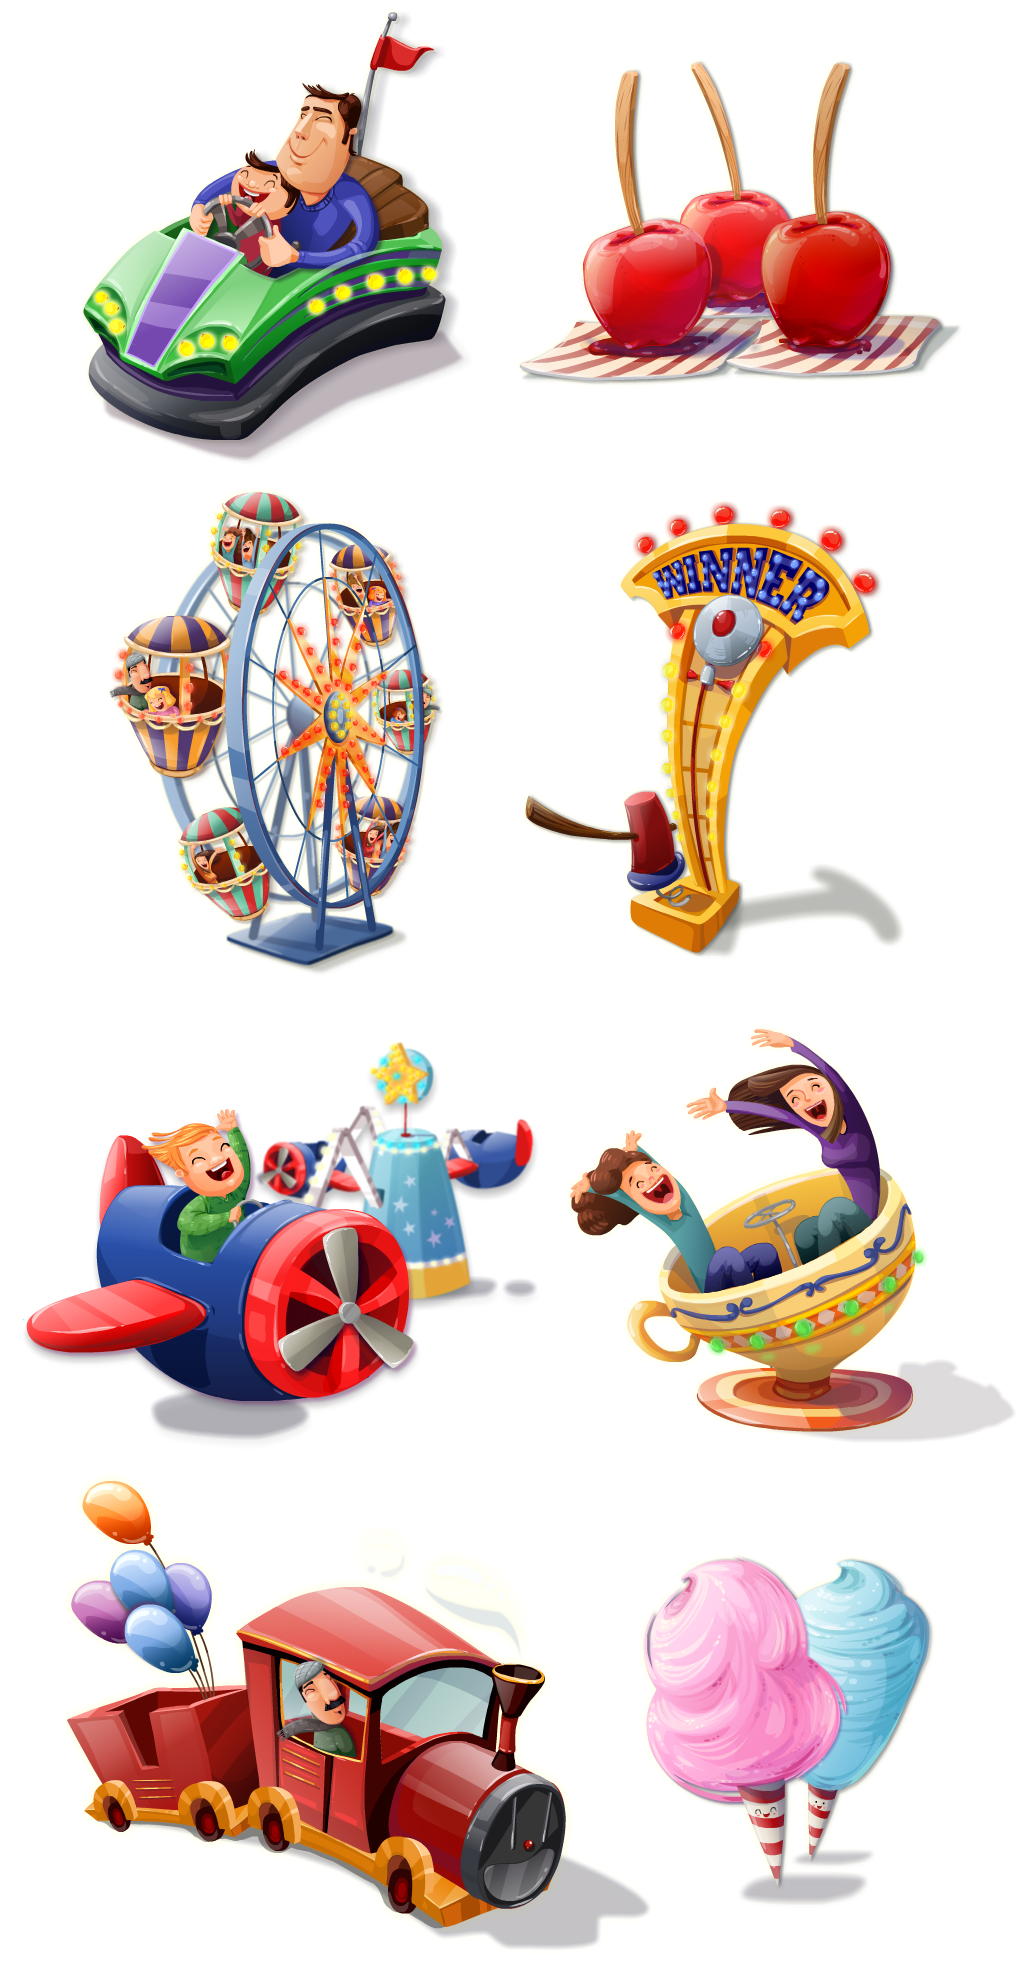 Games clipart fair game. Work done for the